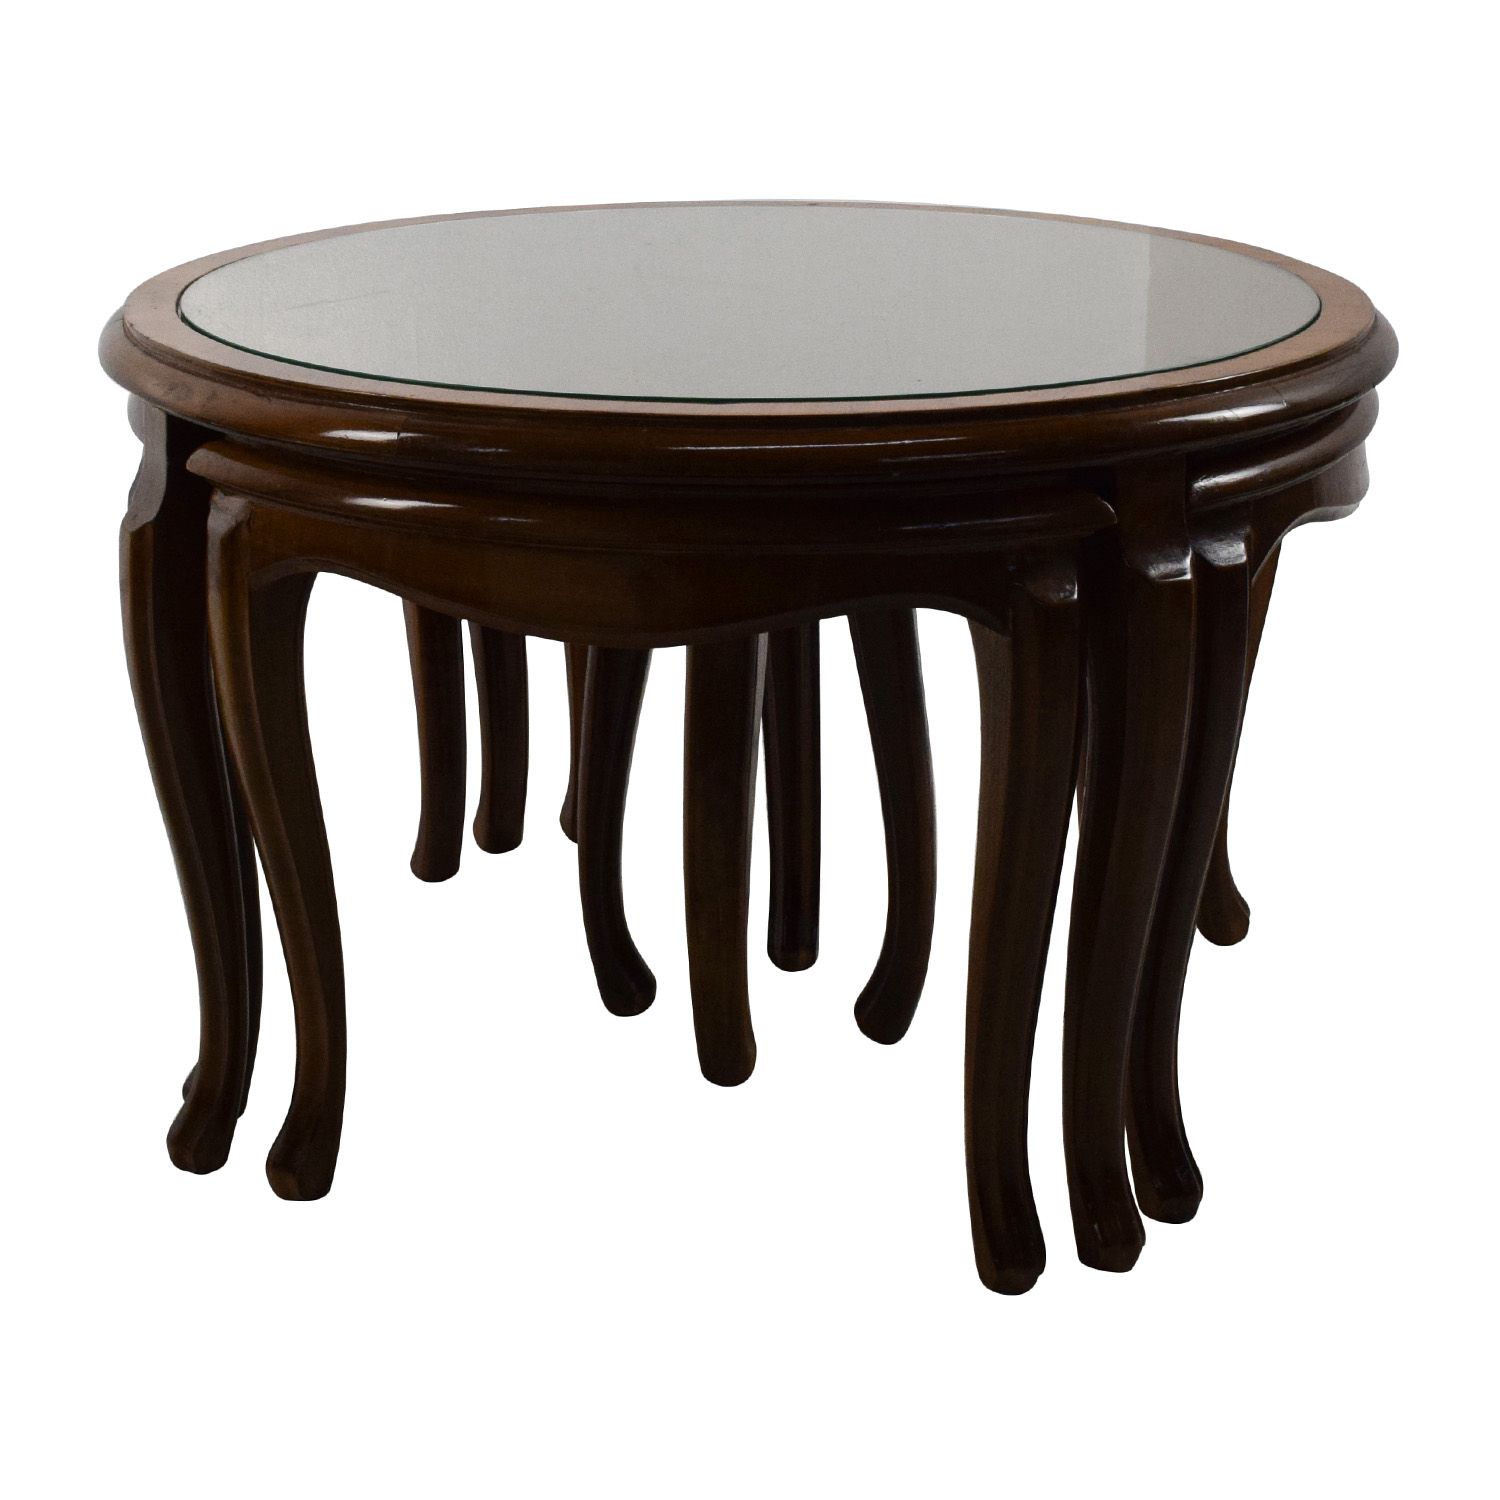 69% OFF Round Glass Top Coffee Table with 4 Nesting Stools Tables